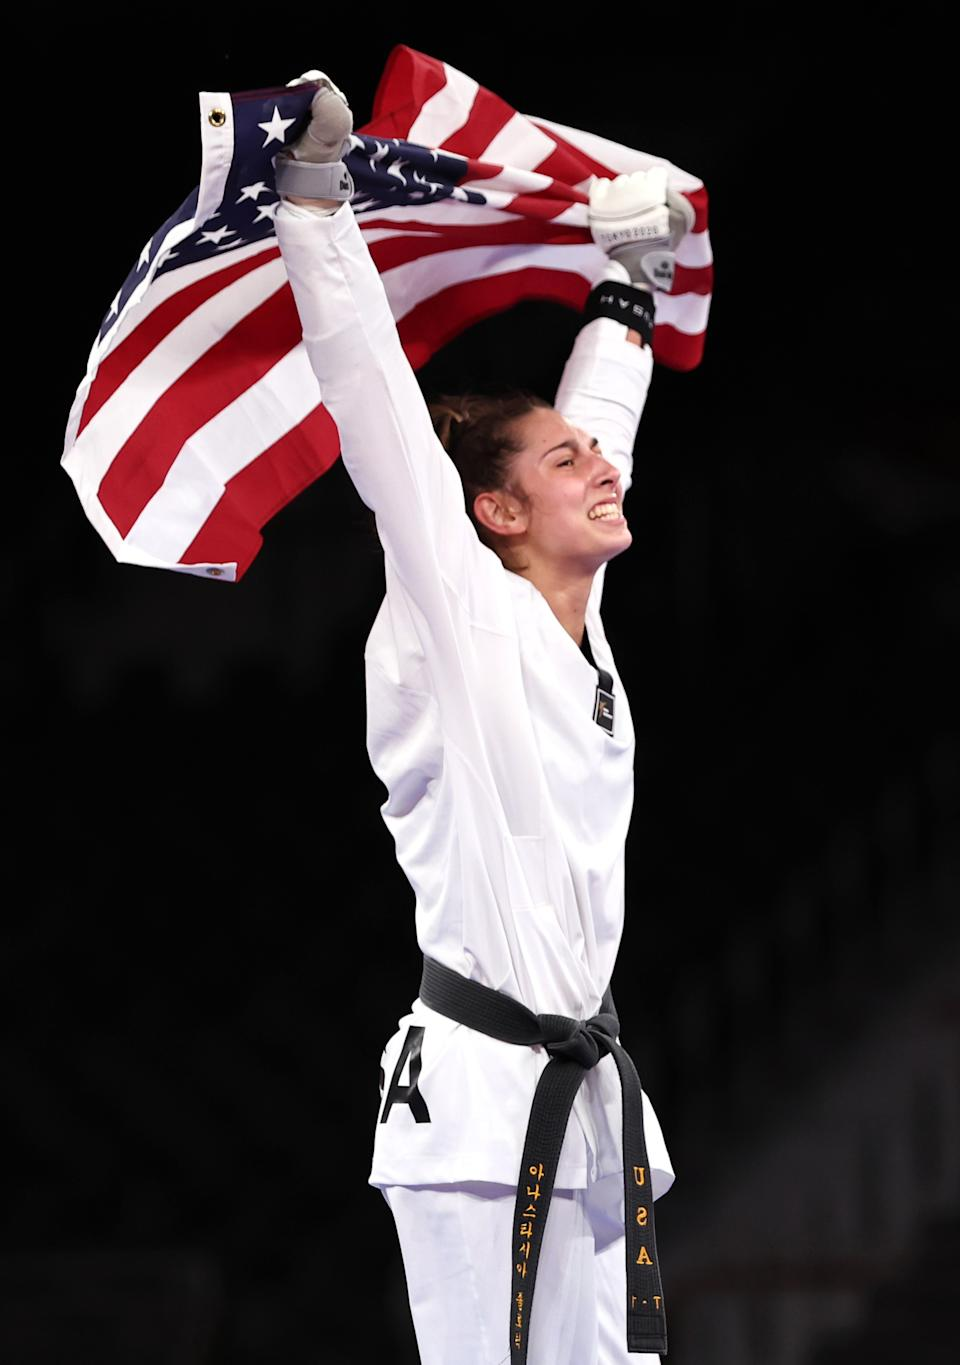 <p>CHIBA, JAPAN - JULY 25: Anastasija Zolotic of Team United States celebrates after defeating Tatiana Minina of Team ROC during the Women's -57kg Taekwondo Gold Medal contest on day two of the Tokyo 2020 Olympic Games at Makuhari Messe Hall on July 25, 2021 in Chiba, Japan. (Photo by Maja Hitij/Getty Images)</p>